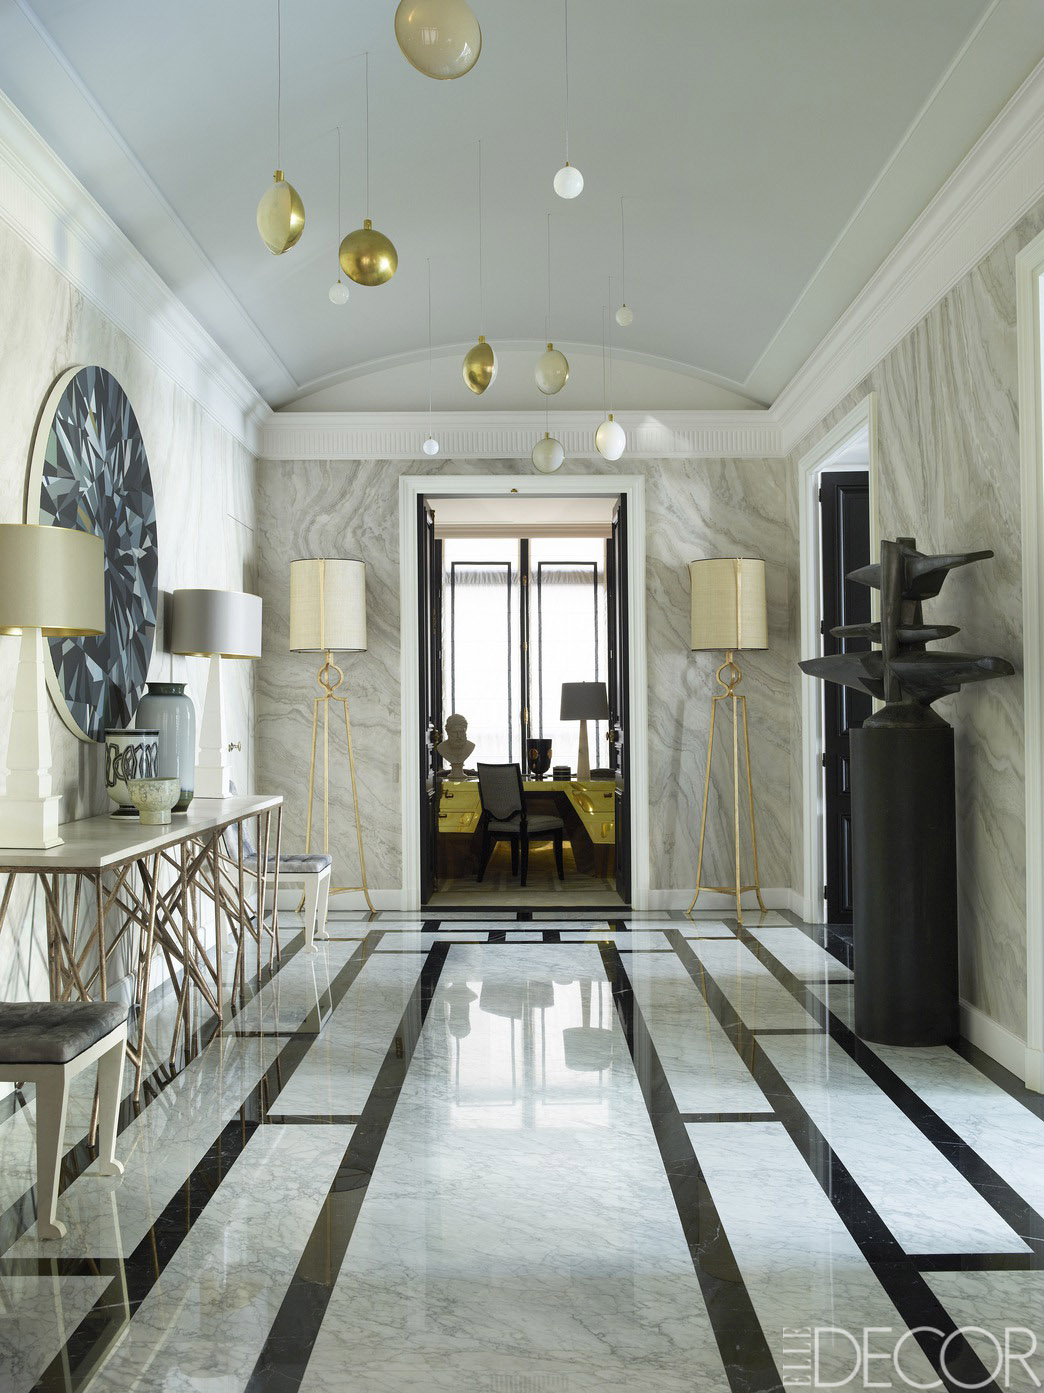 Oh by the way BEAUTY Interior DesignJeanLouis Deniot